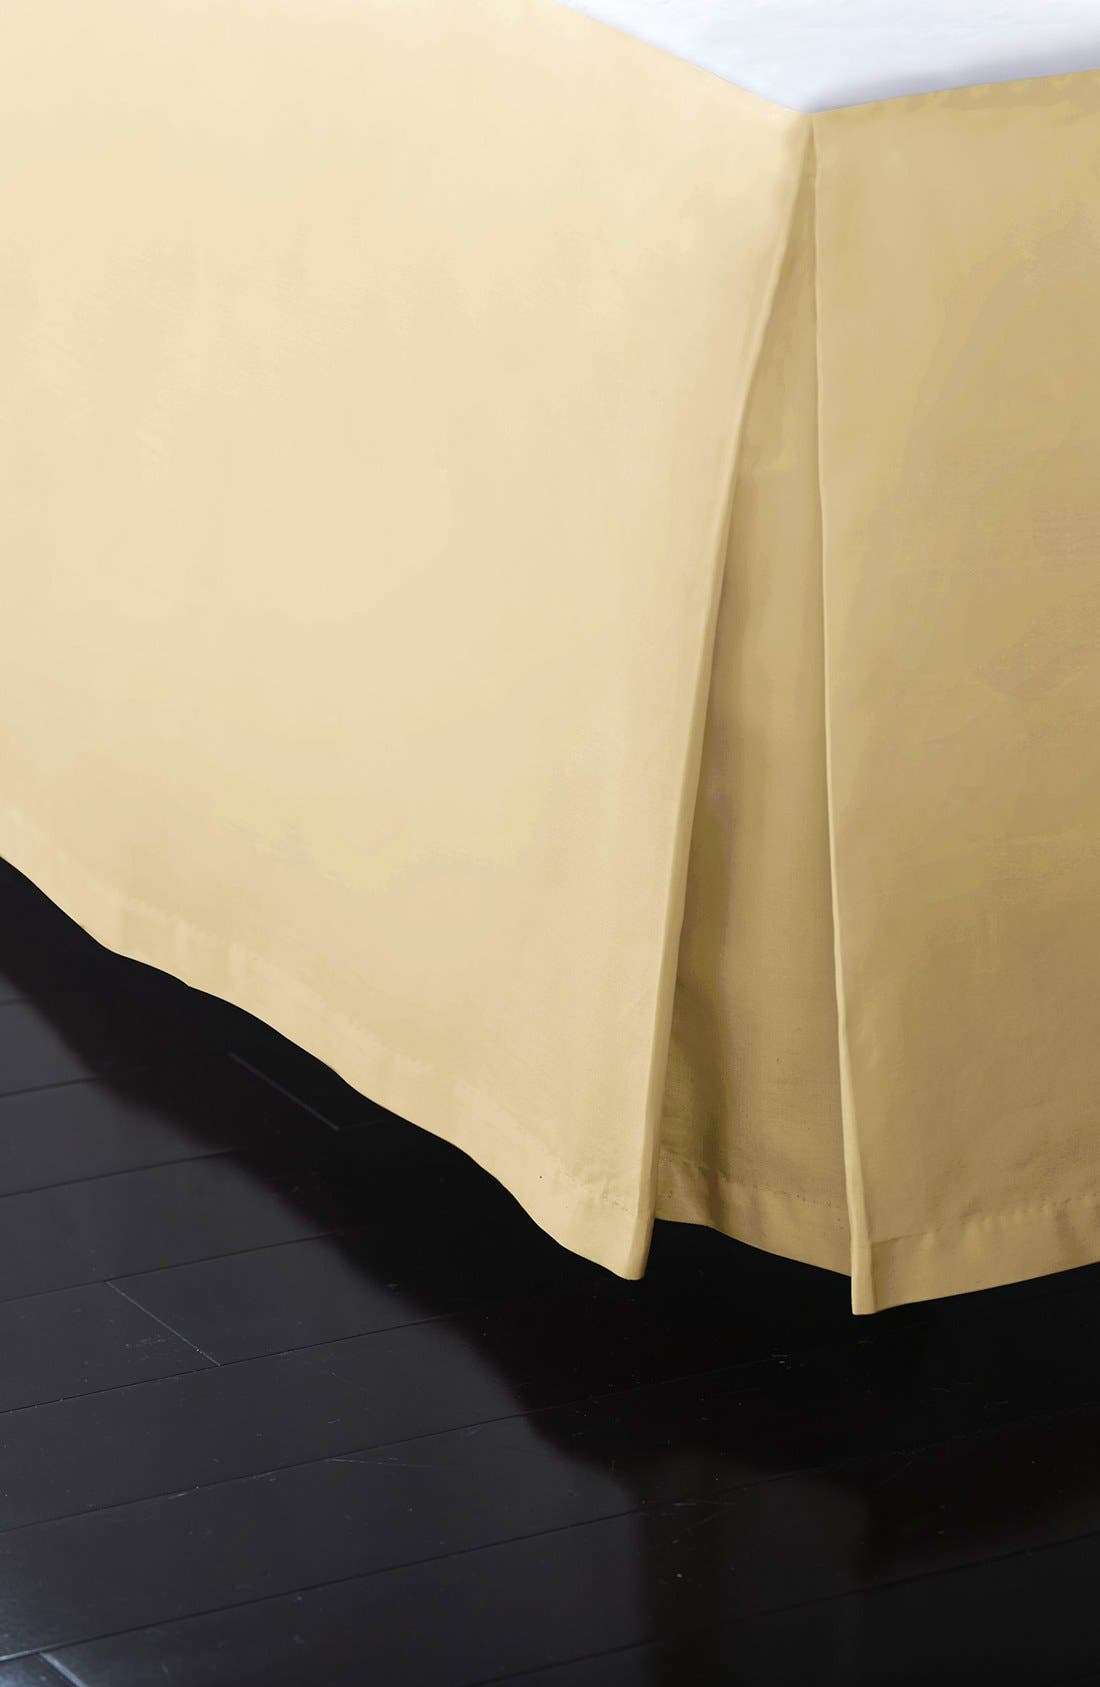 Donna Karan Collection 'Reflection' 510 Thread Count Bed Skirt,                             Main thumbnail 1, color,                             Gold Dust